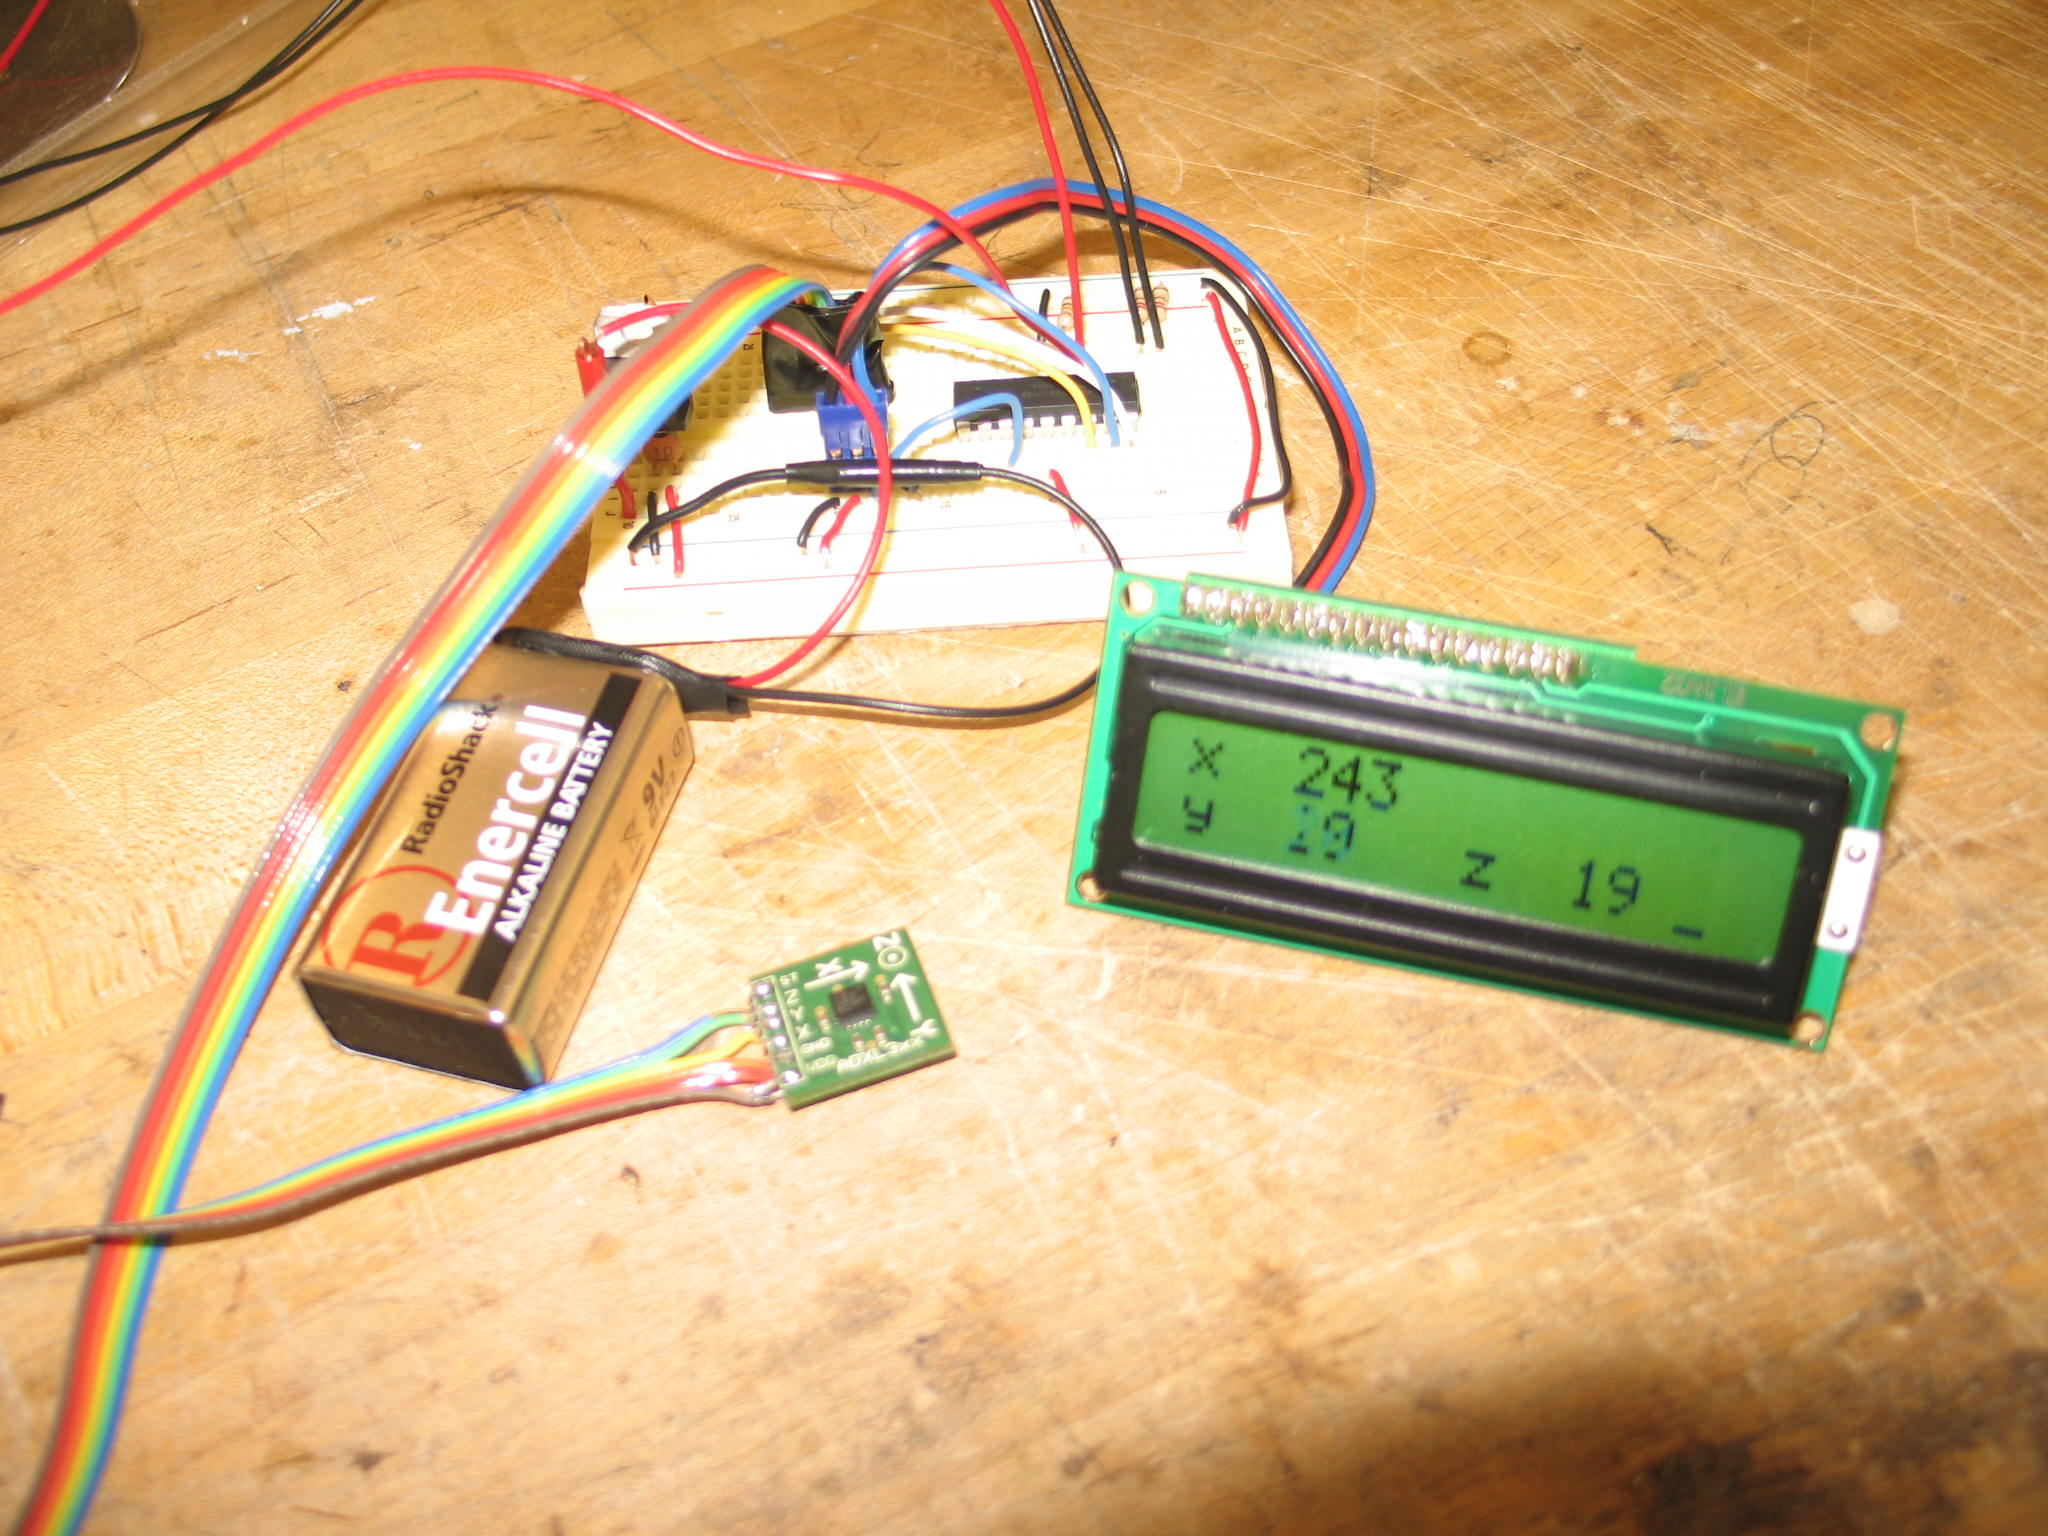 heres the completed circuit with an LCD screen outputting the axis values